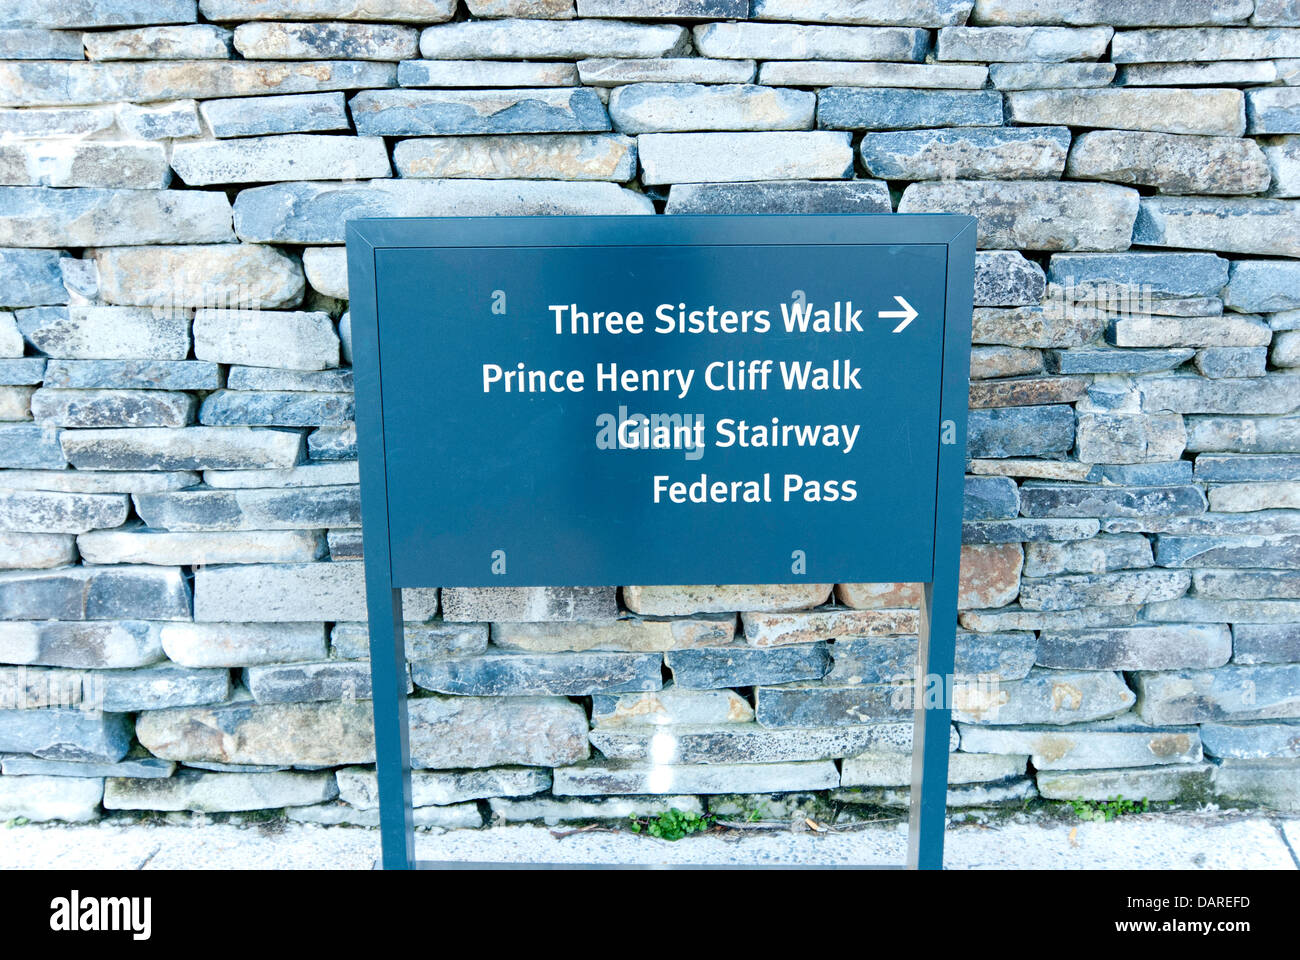 Directional signage at the Three Sisters lookout, Echo Point, Katoomba, New South Wales, Australia Stock Photo